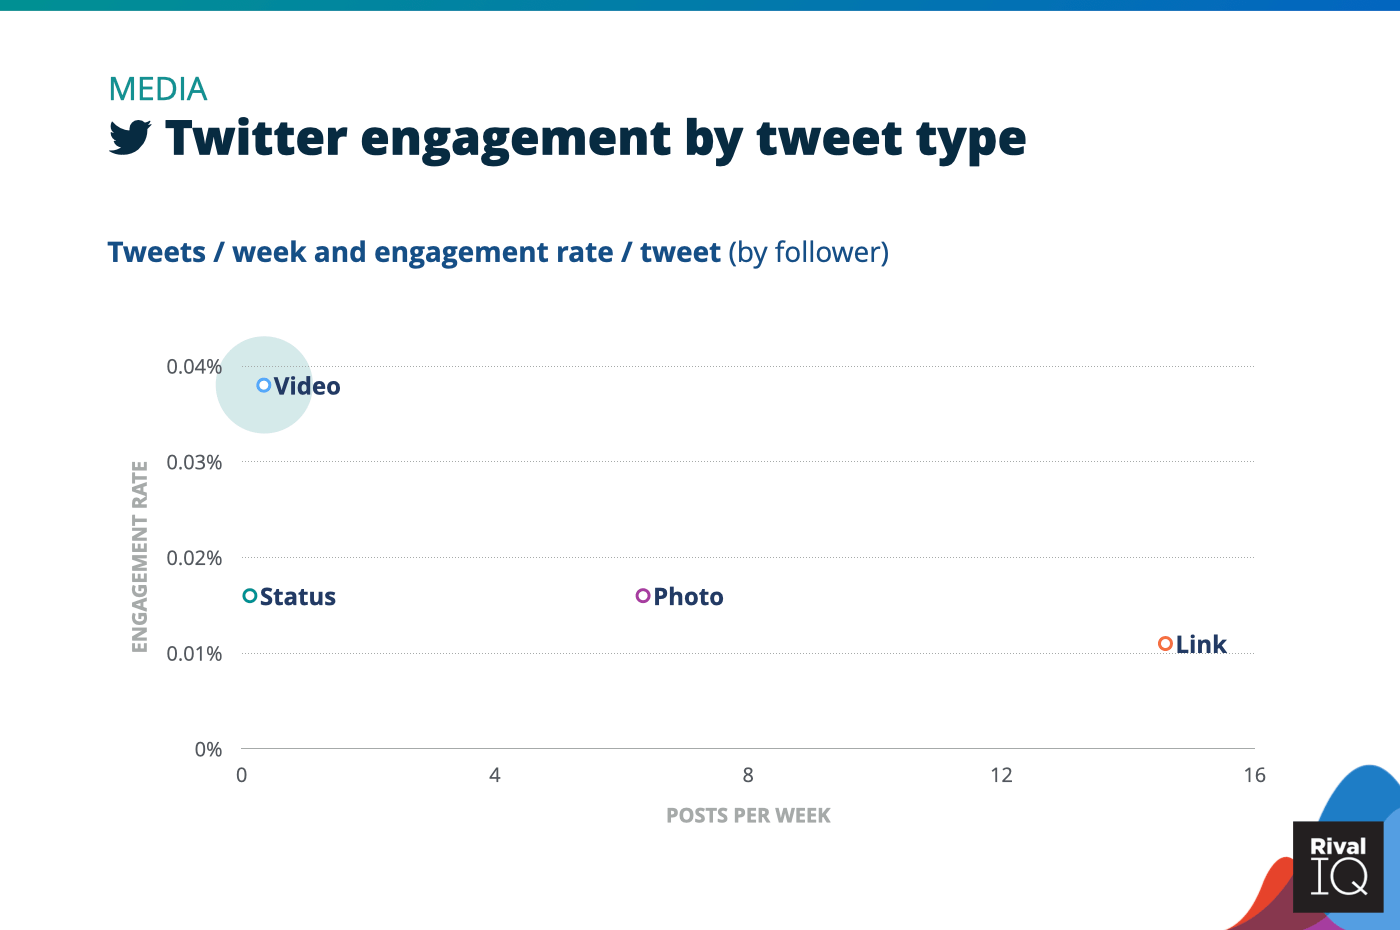 Chart of social media benchmarks for Twitter posts per week and engagement rate by tweet type, Media